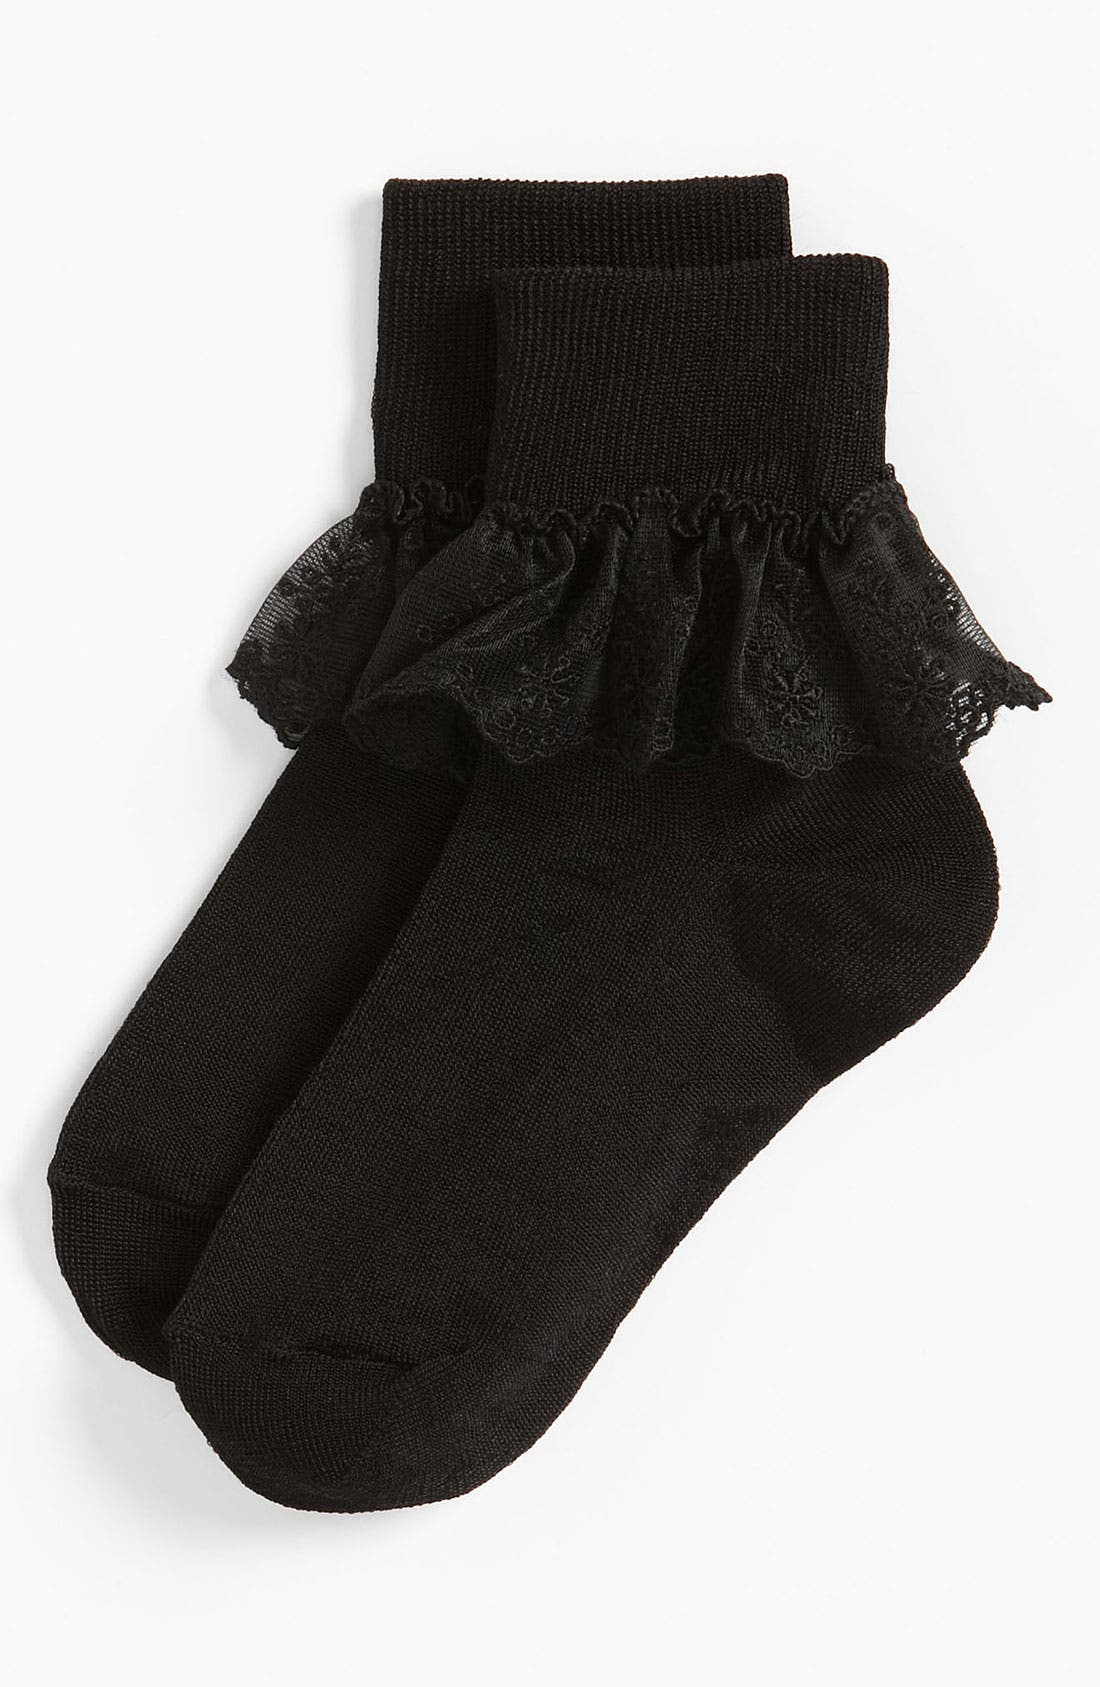 Alternate Image 1 Selected - Nordstrom 'Snow Queen' Socks (Toddler, Little Girls & Big Girls)